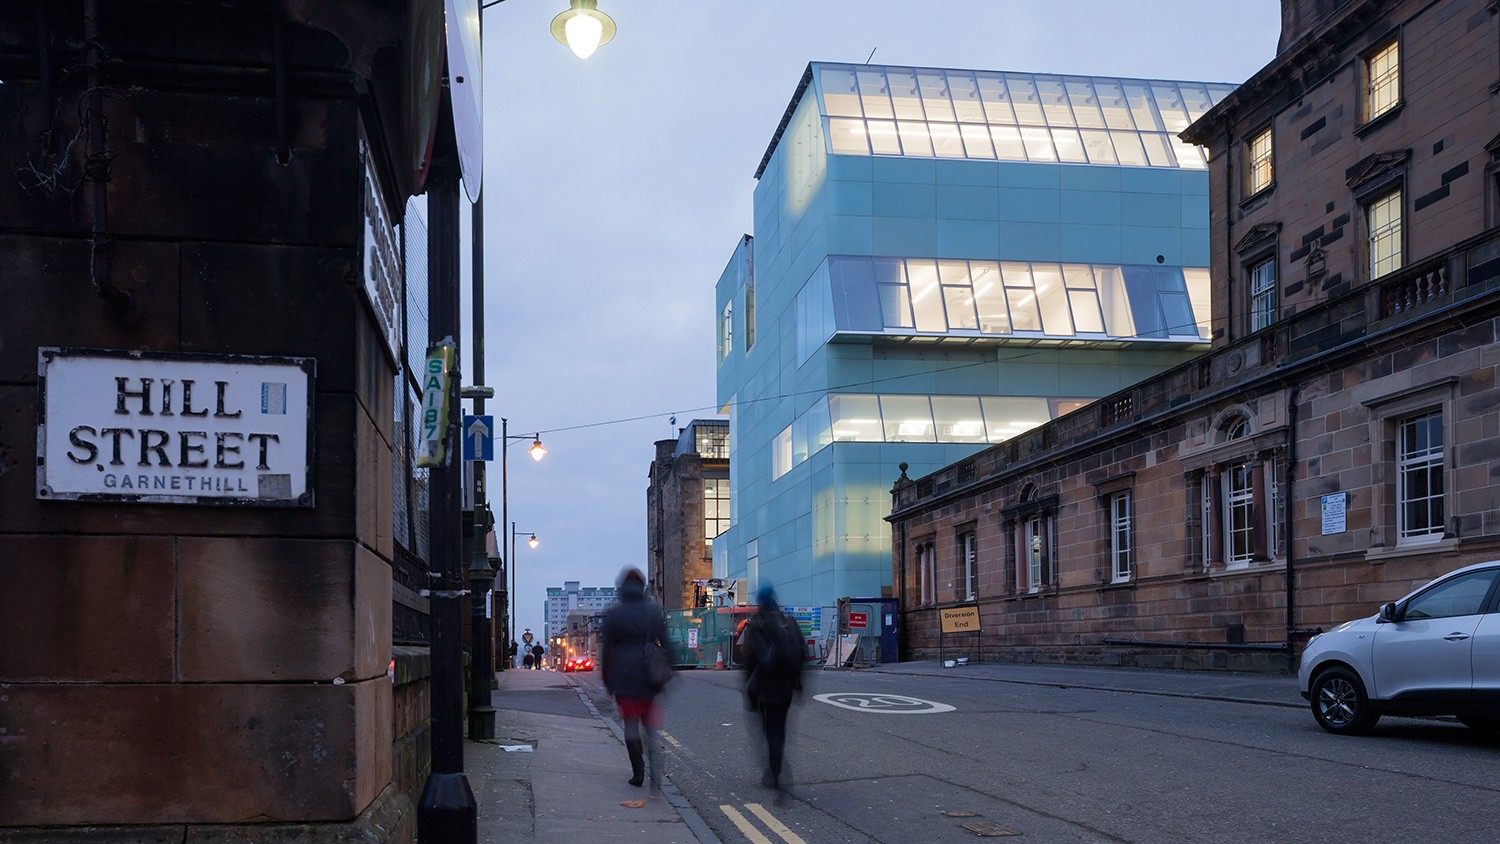 https://stevenholl.sfo2.digitaloceanspaces.com/uploads/projects/project-images/IwanBaan_Glasgow_14-017506_WH.jpg